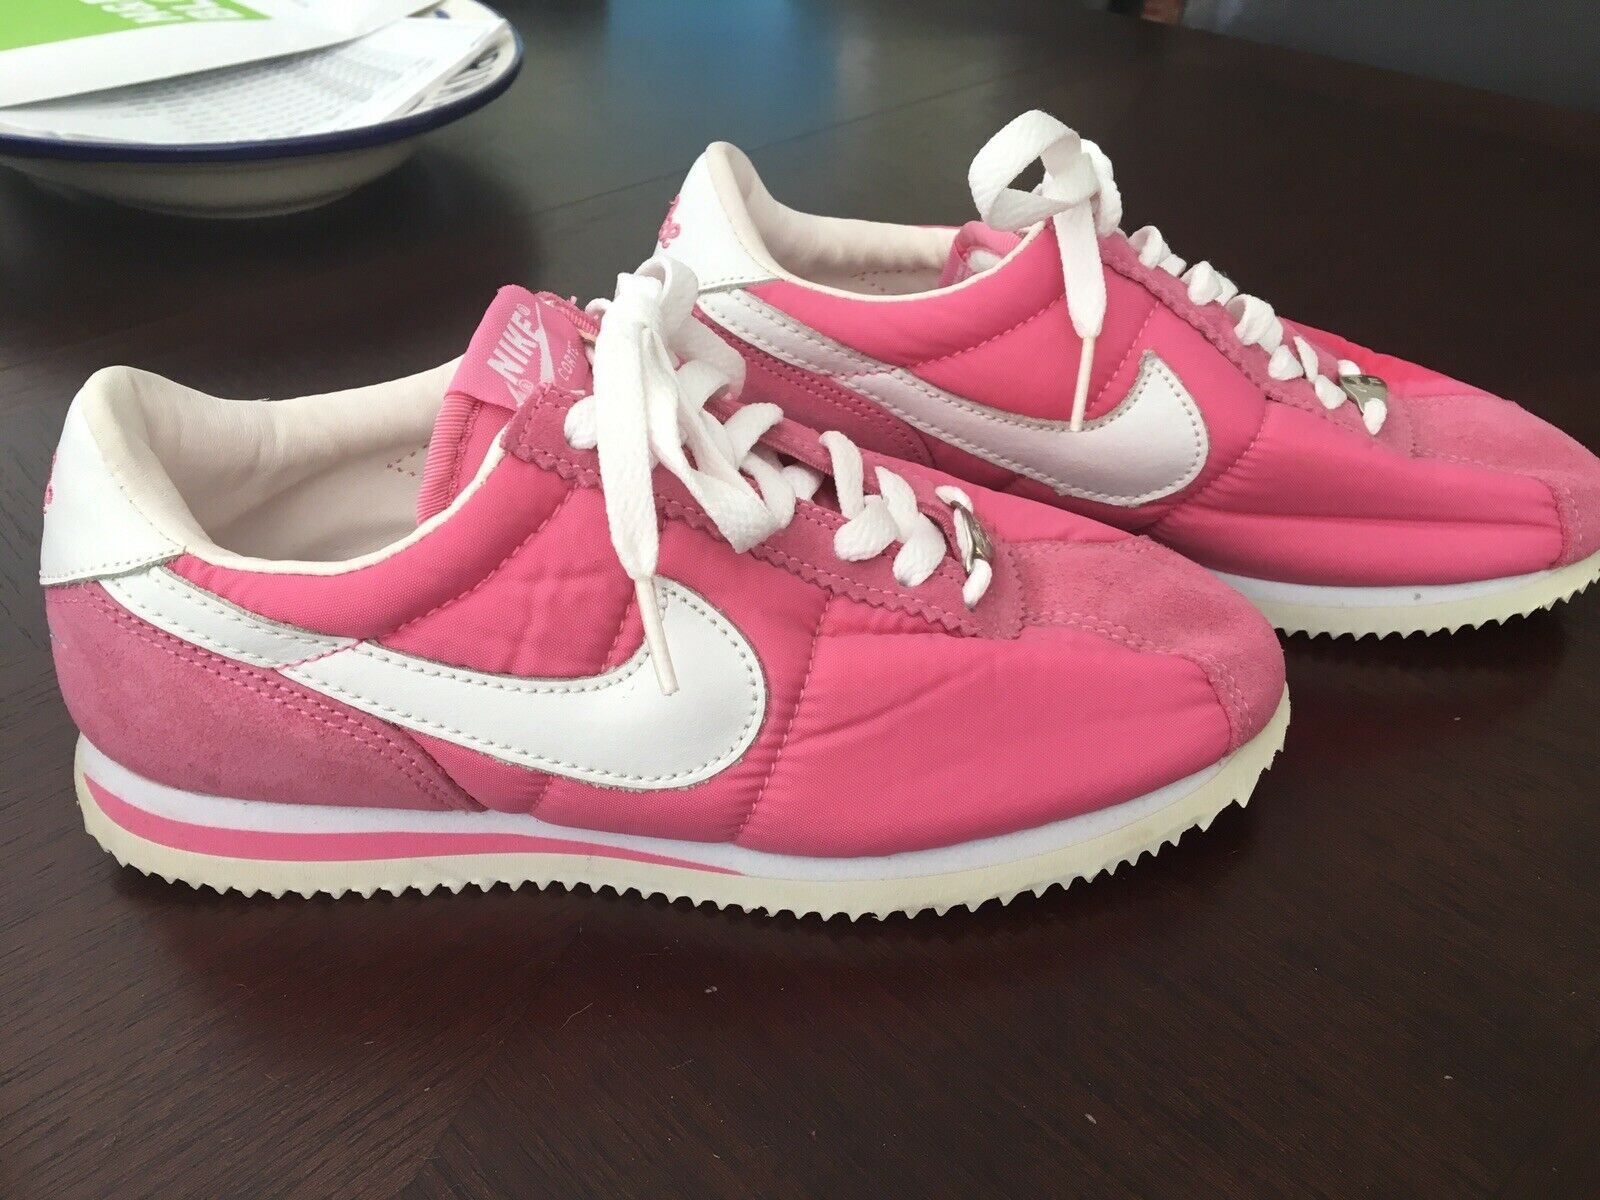 new styles 56bbe 84868 New Rare Nike Cortez 2003 2003 2003 Nylon Pink Gym shoes ...